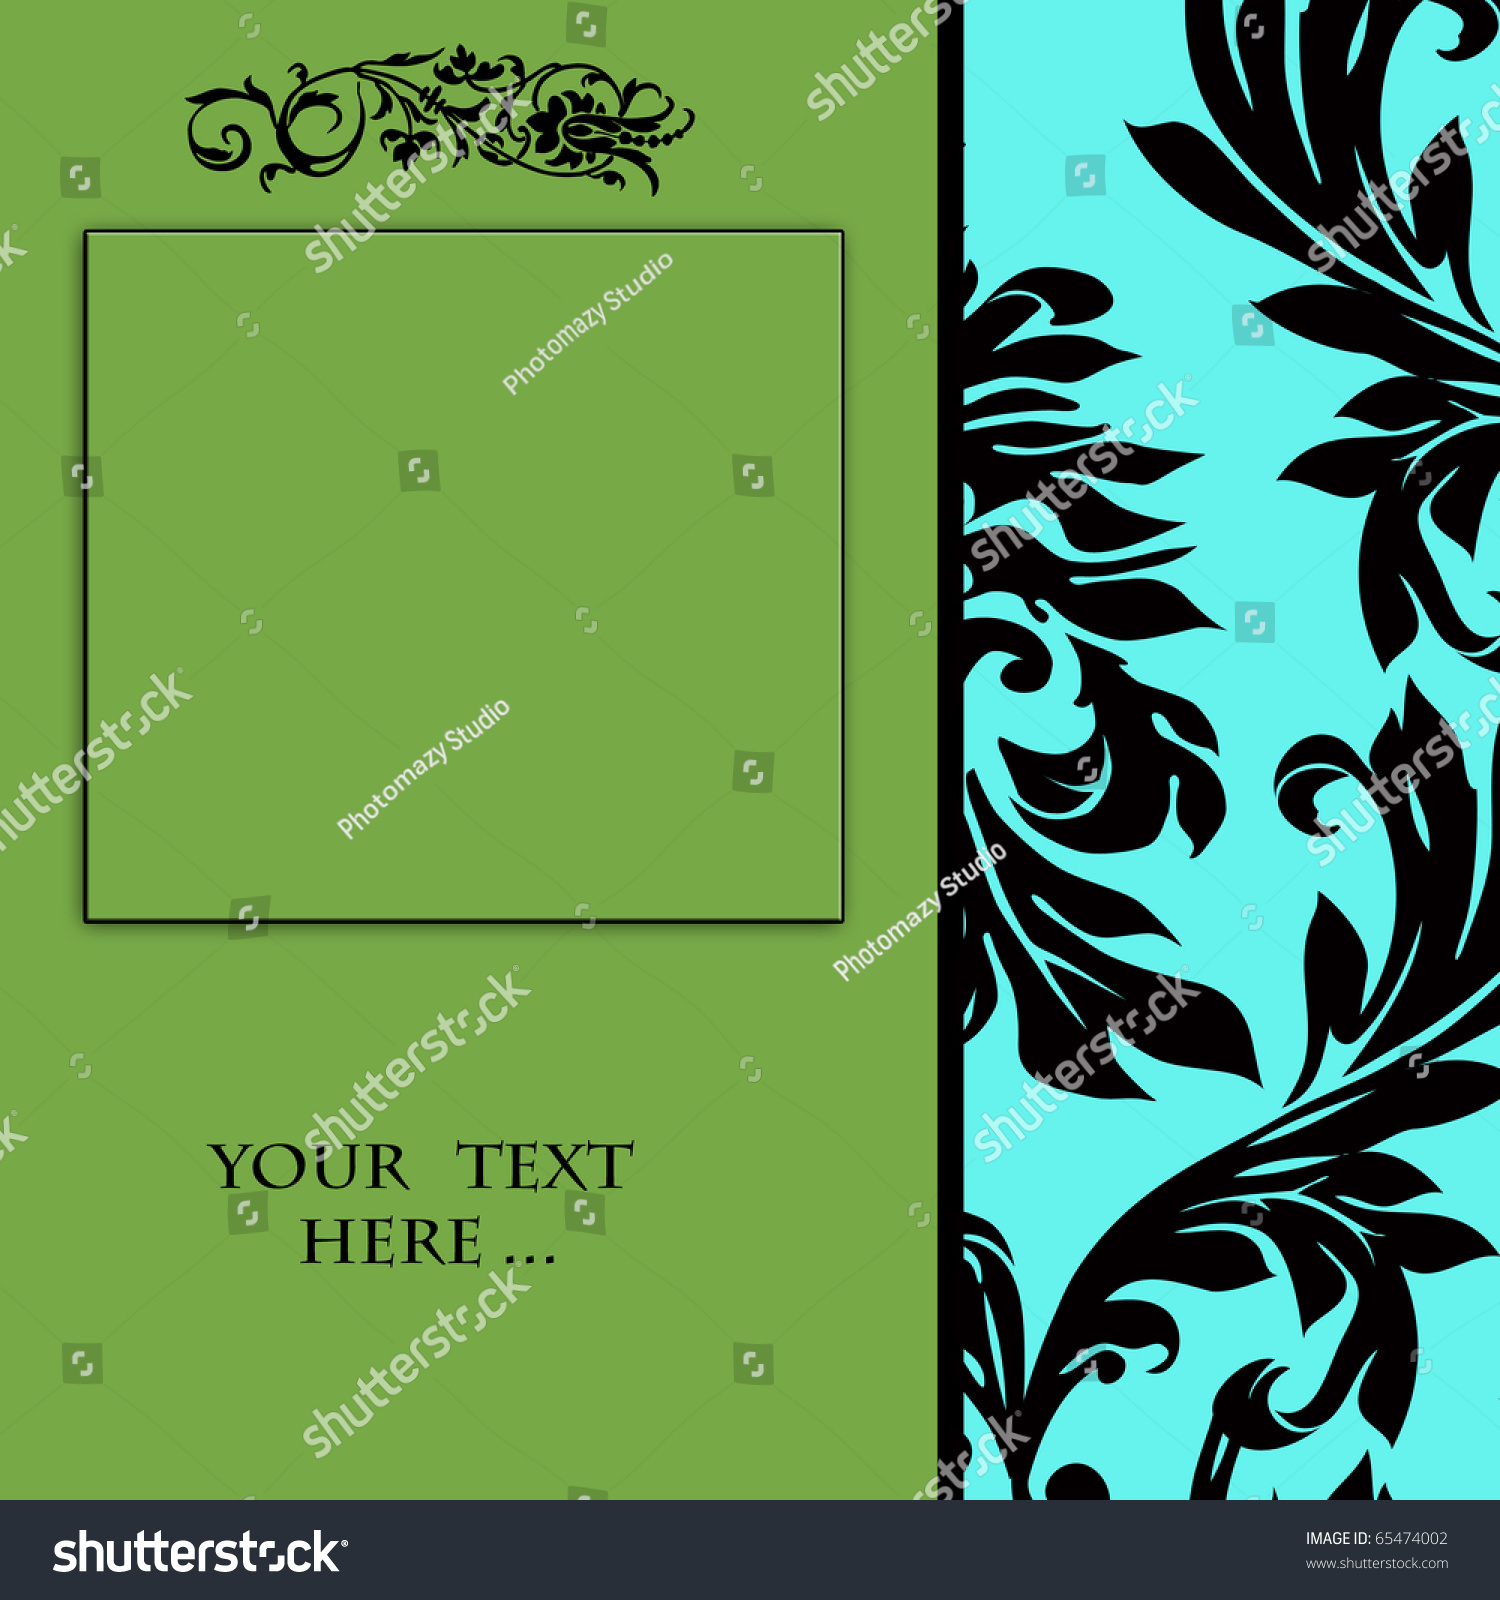 Modern Party Invitation Templates Free Yaseen for – Modern Party Invitations